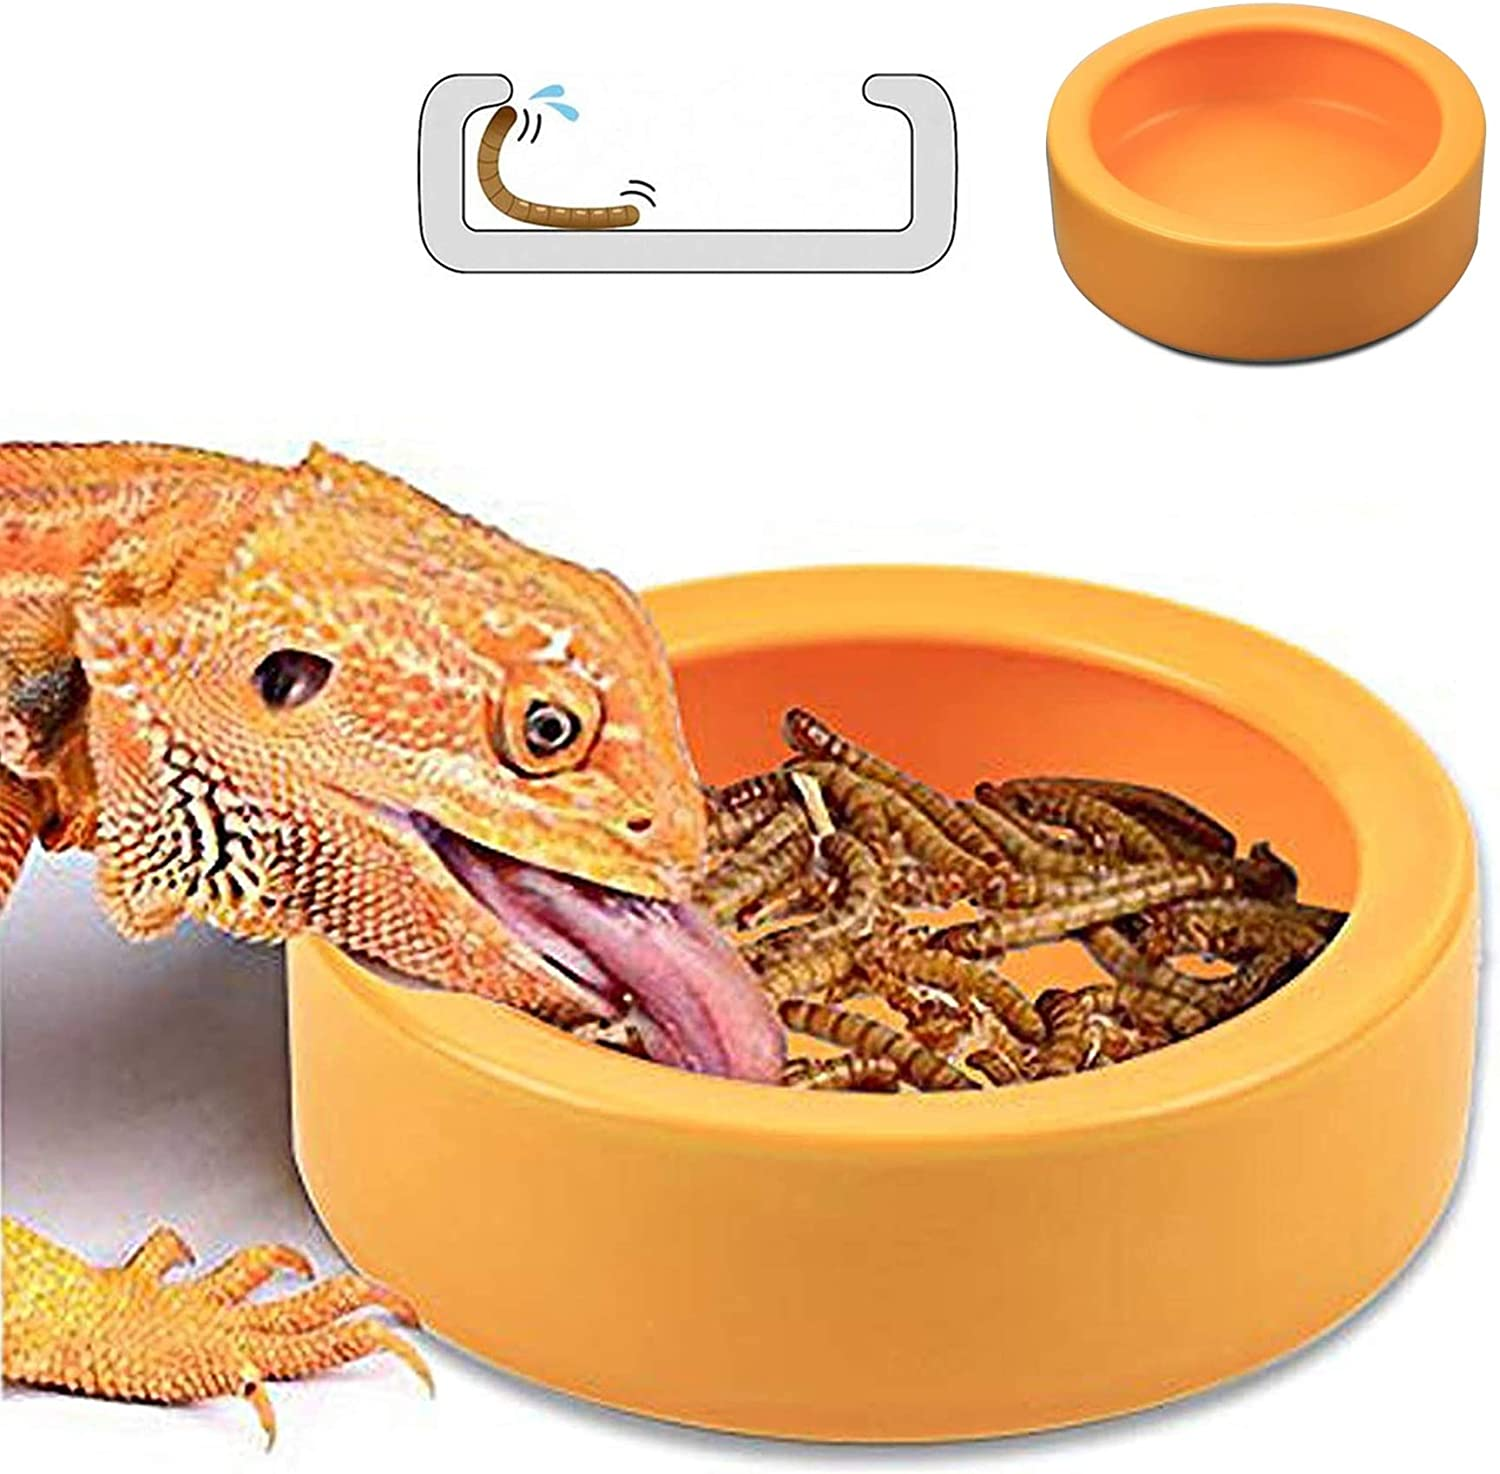 Reptile Food Dish Bowl, Worm Water Dish Small (2.75in) Lizard Gecko Ceramic Pet Bowls, Mealworms Bowls for Leopard Bearded Dragon Chameleon Hermit Crab Dubia Cricket Anti-Escape Mini Superworm Feeder